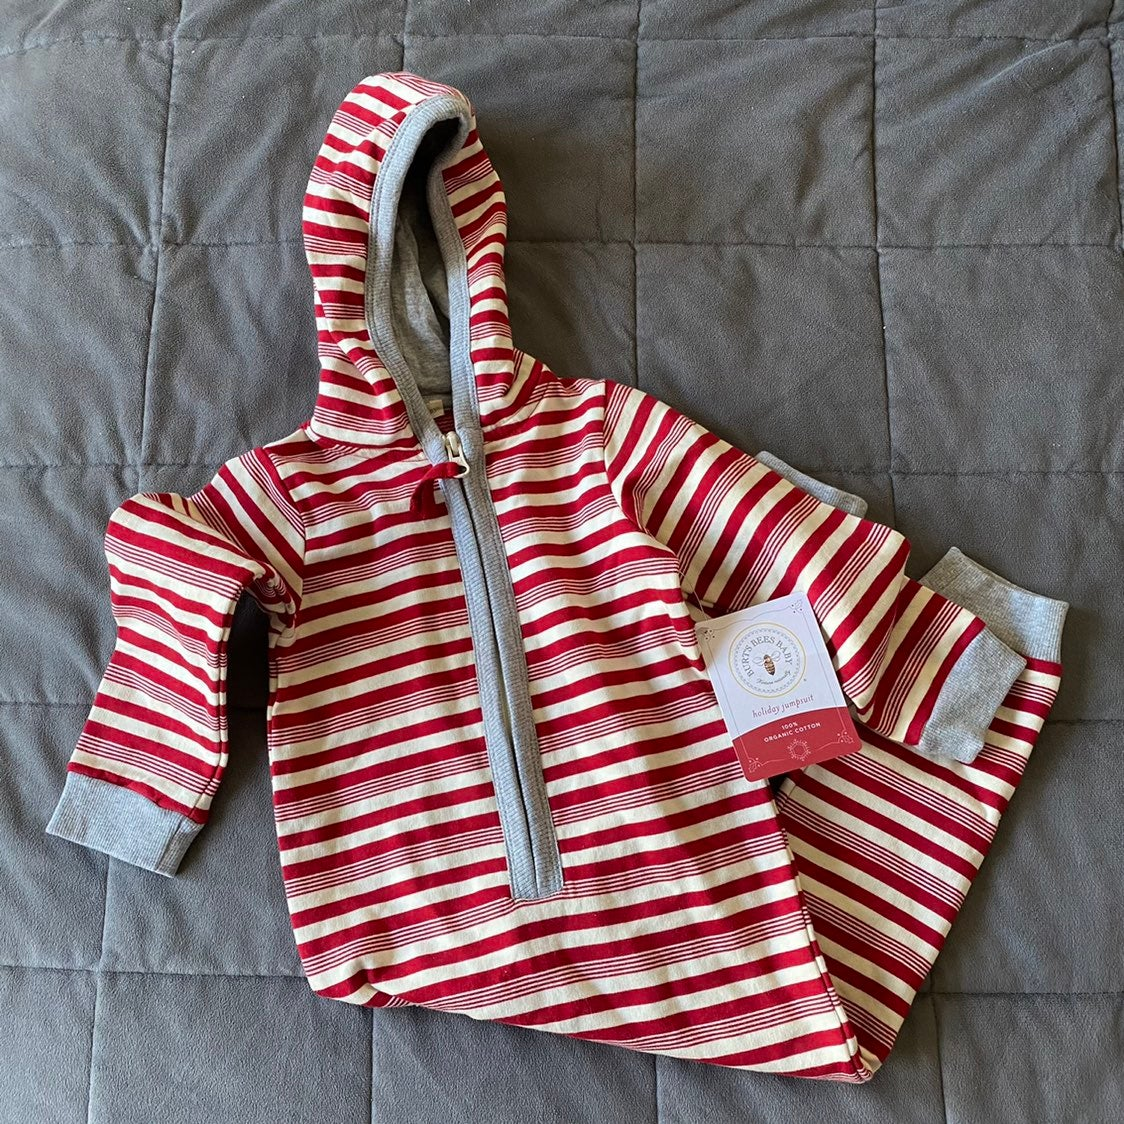 NWT Burt's Bees Baby Jumpbees 12 months